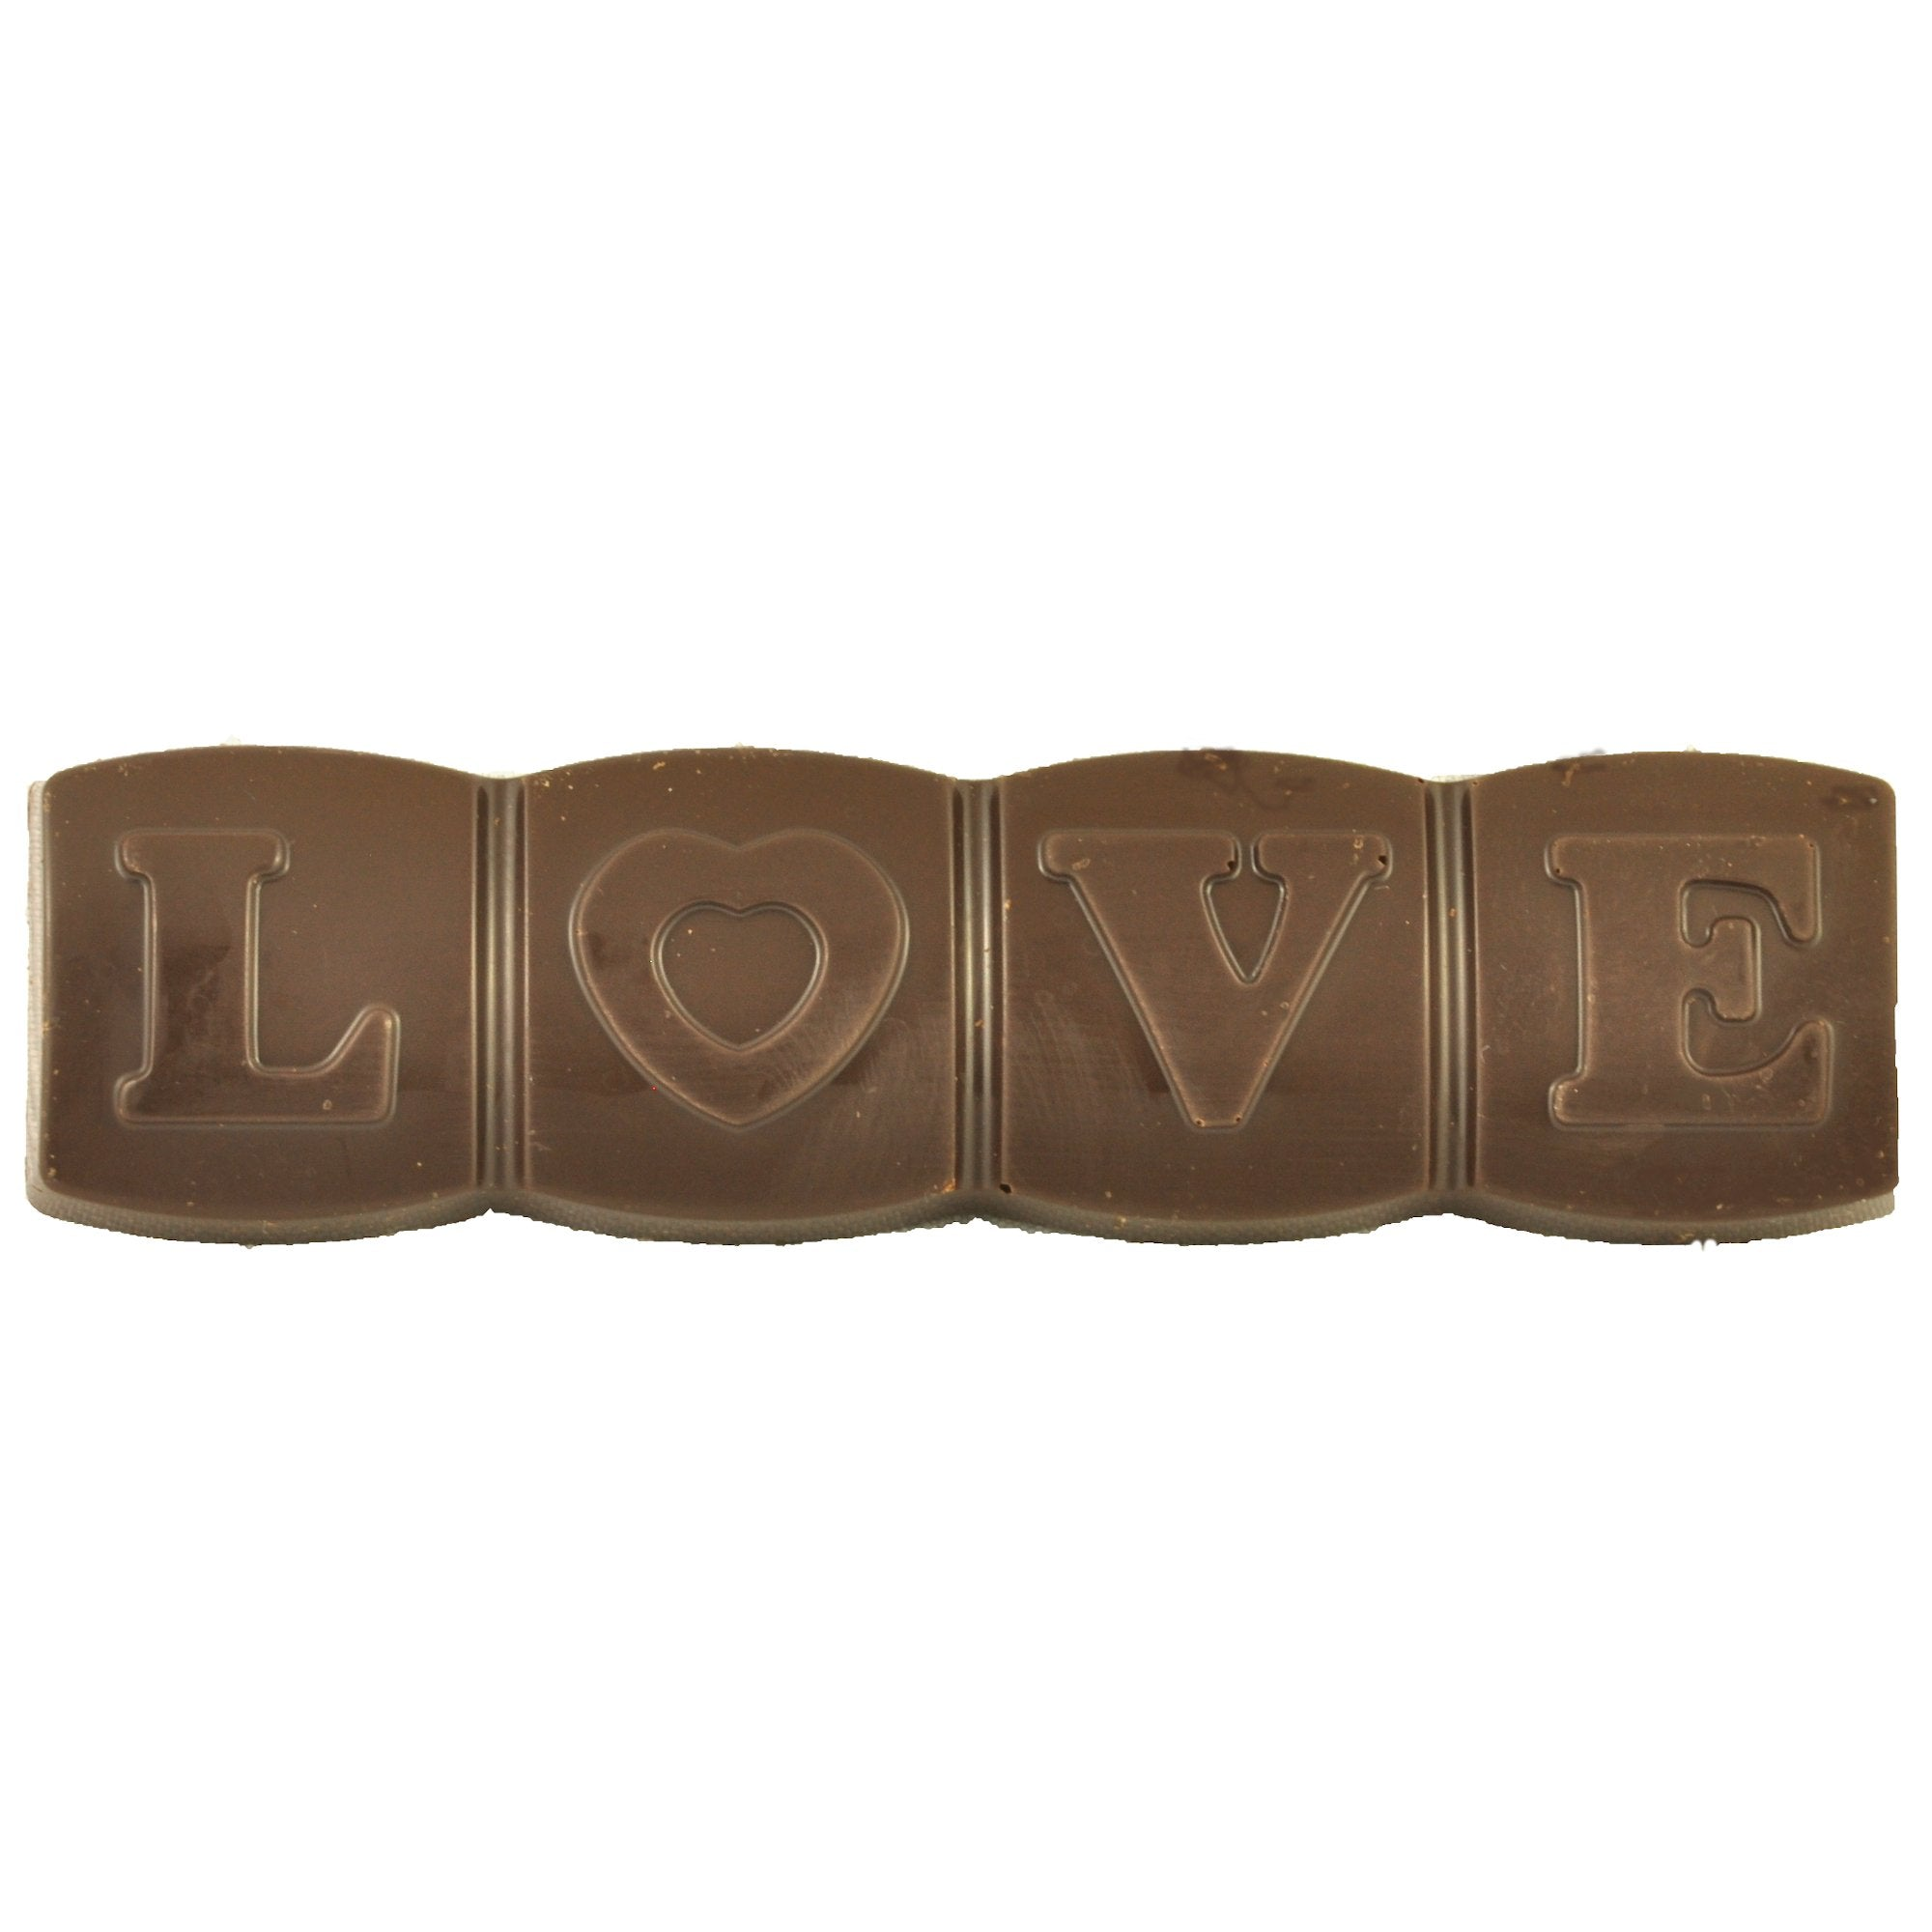 LOVE Bar 70% dark chocolate 40g - Vegan  12/Box